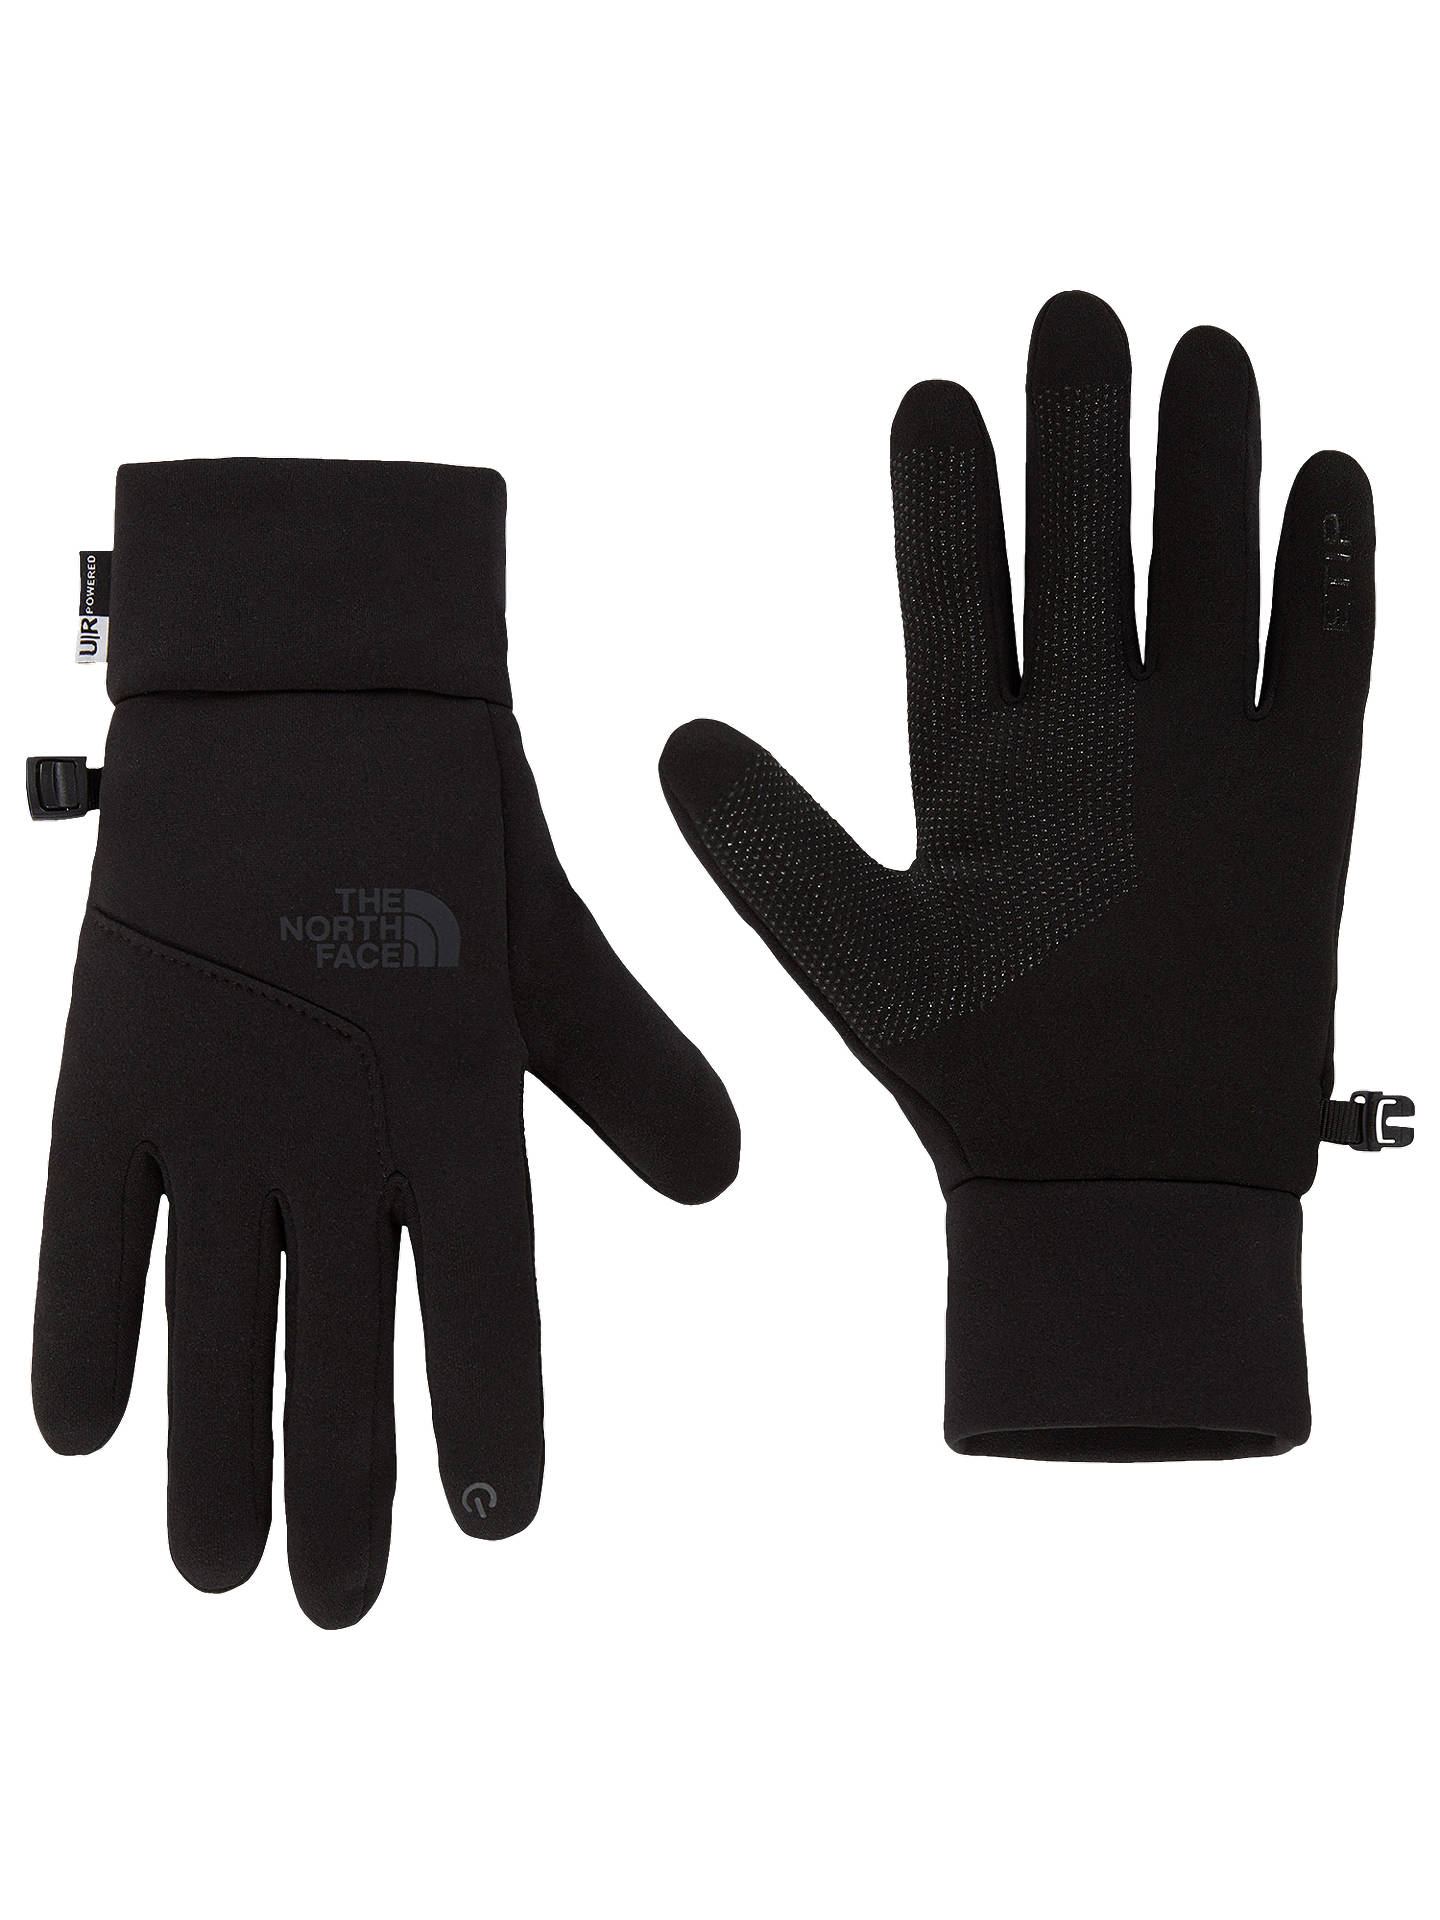 BuyThe North Face Etip Gloves, Black, S Online at johnlewis.com